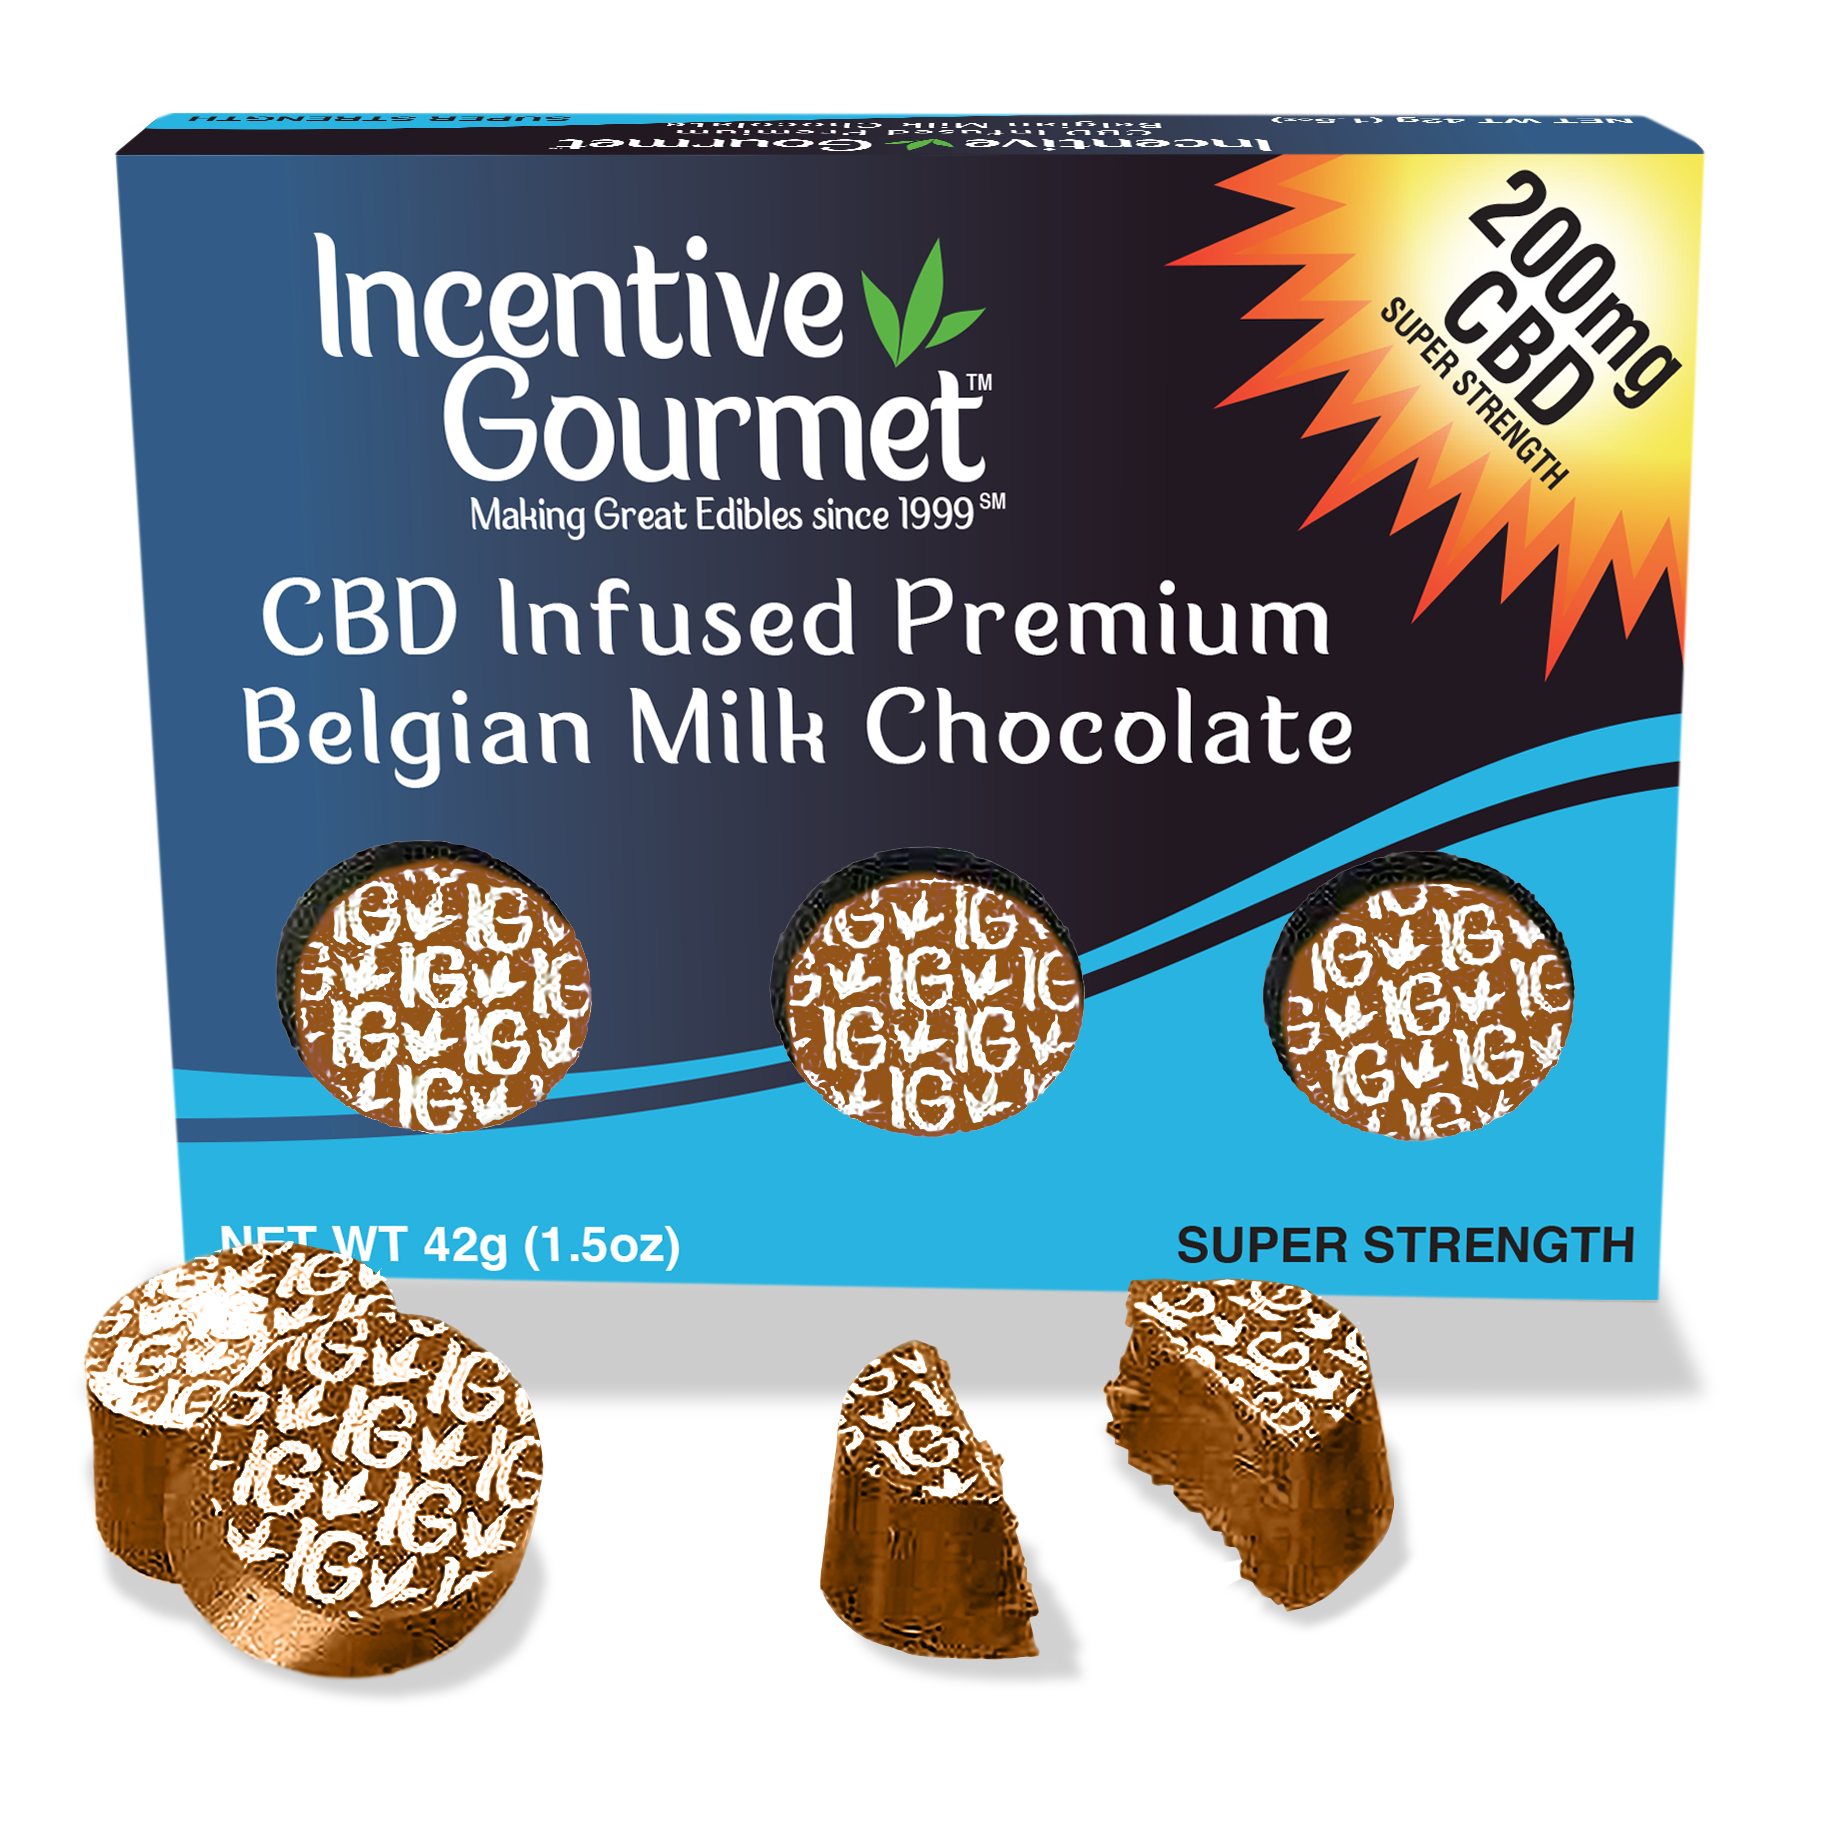 CBD Infused Premium Belgian Milk Chocolate Box